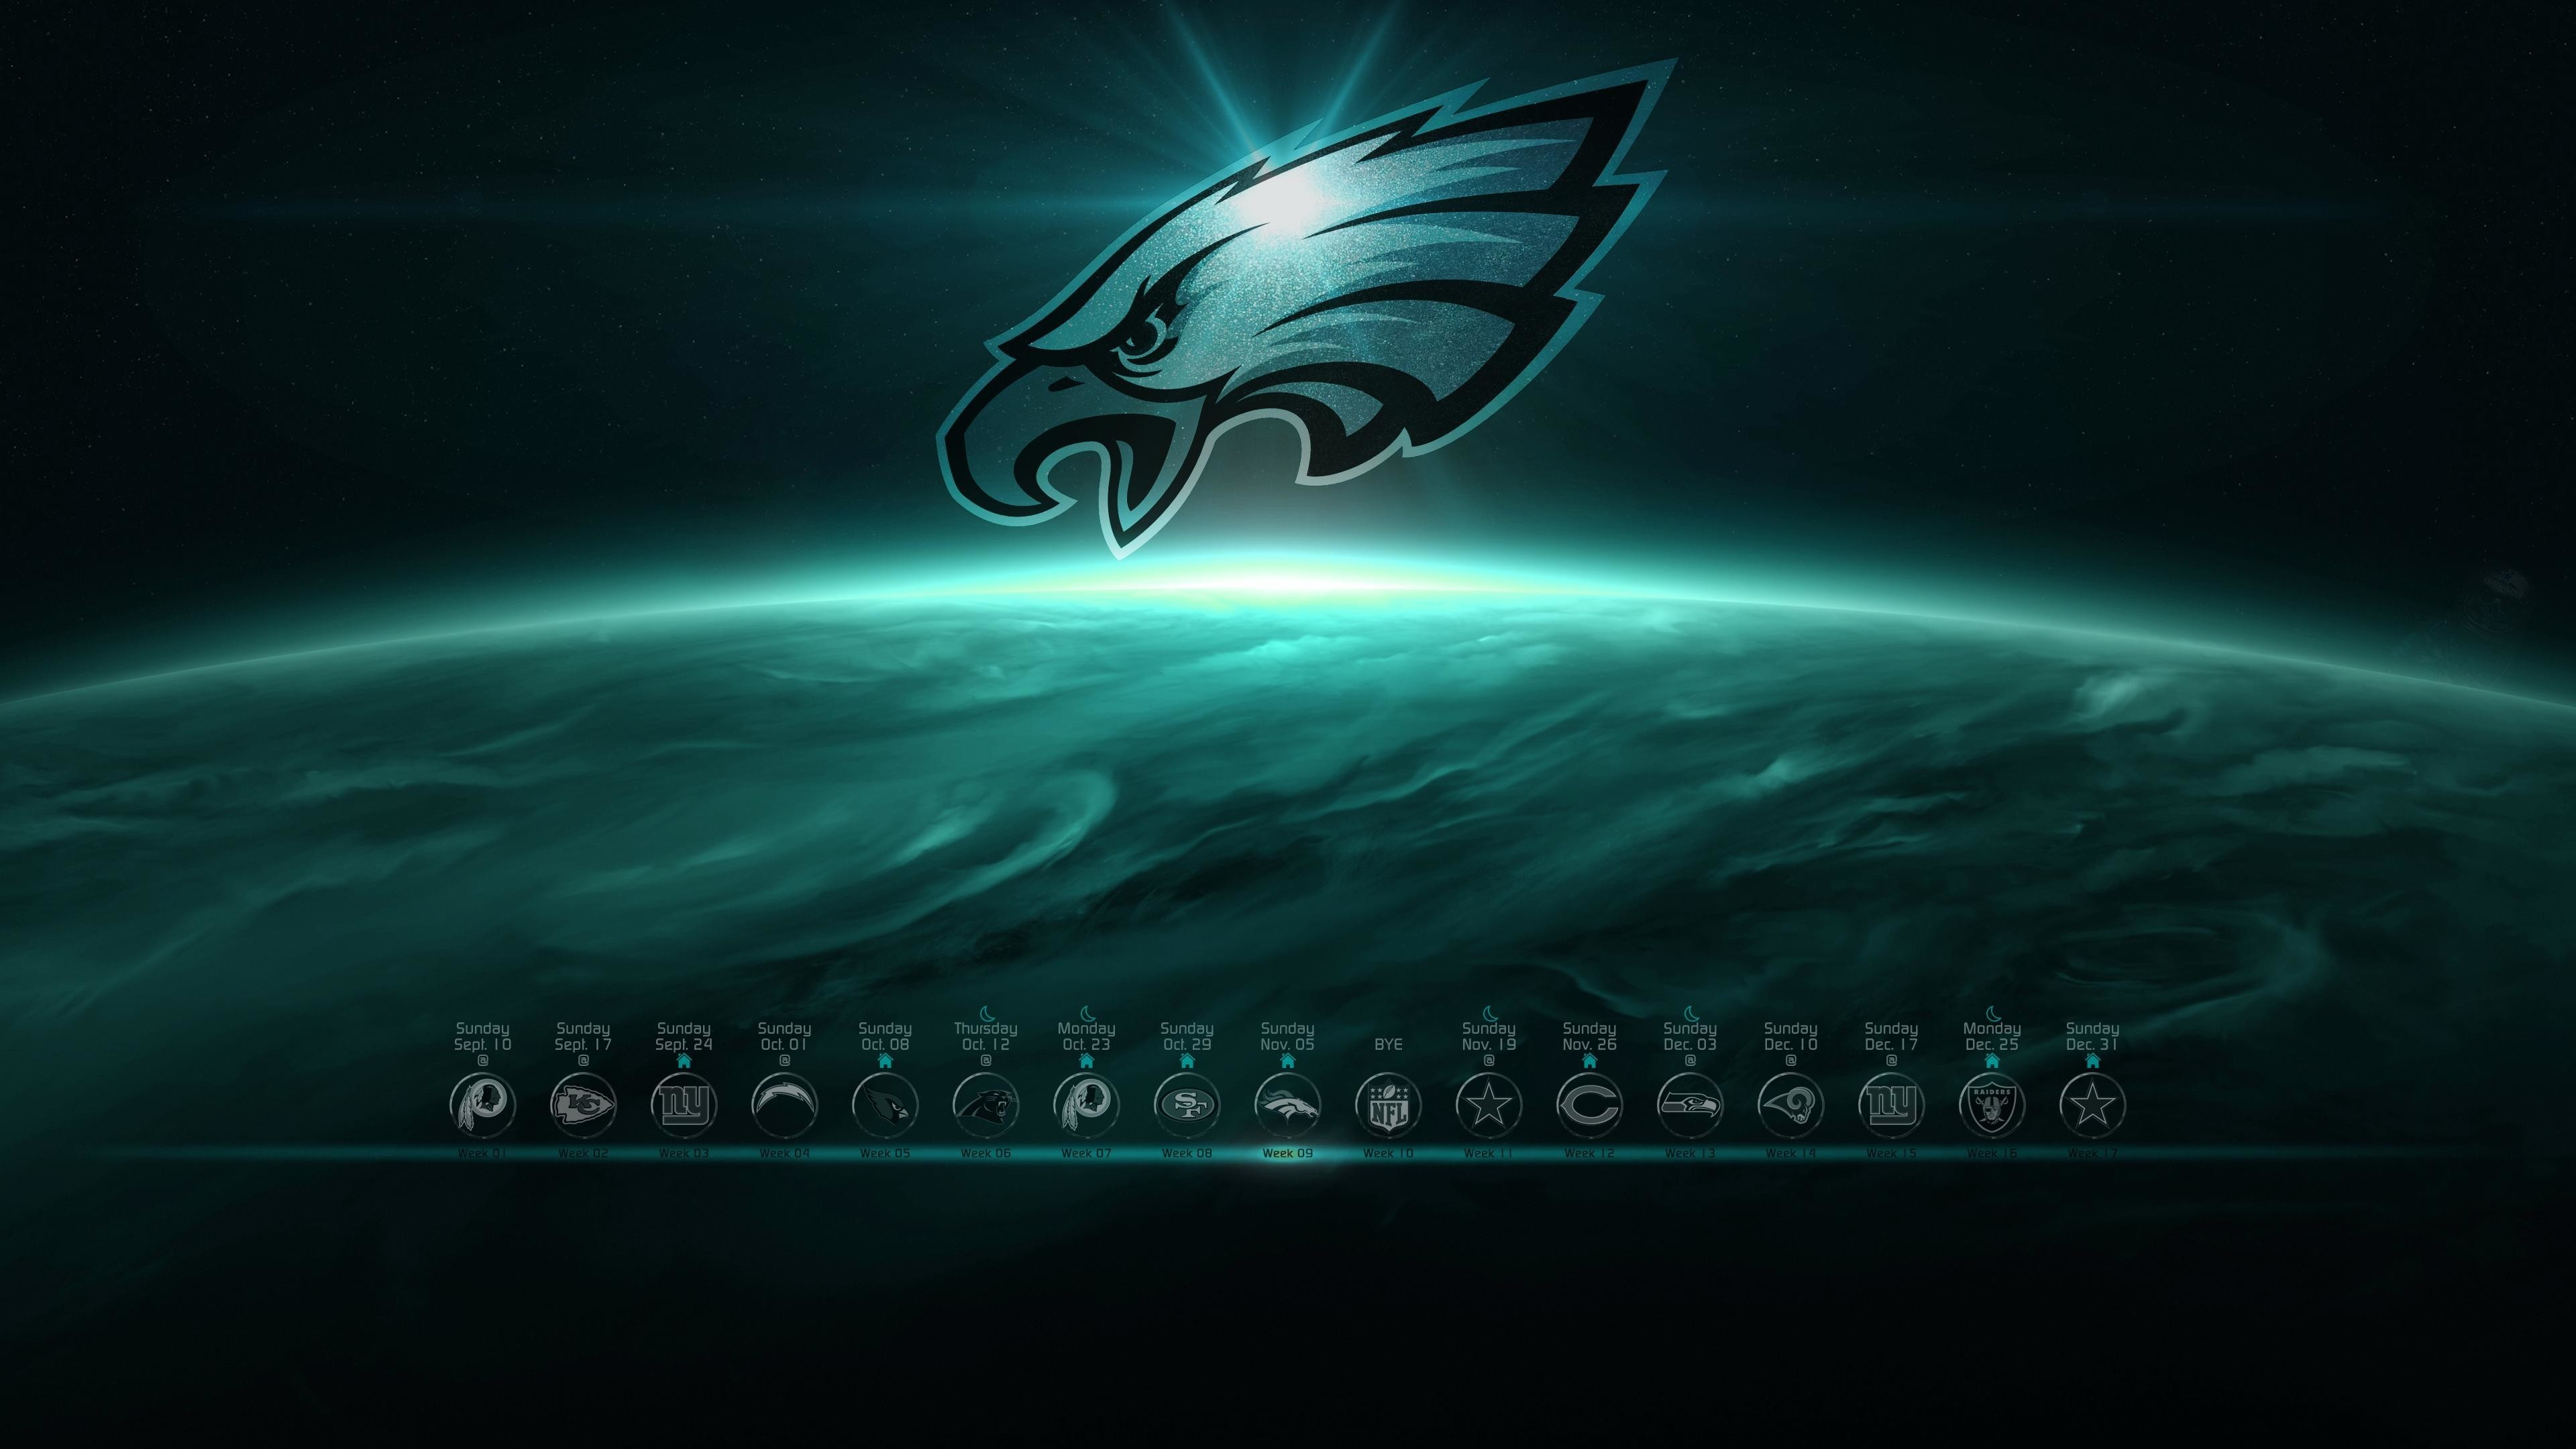 3840x2160  Philadelphia Eagles wallpaper 2017 With schedule